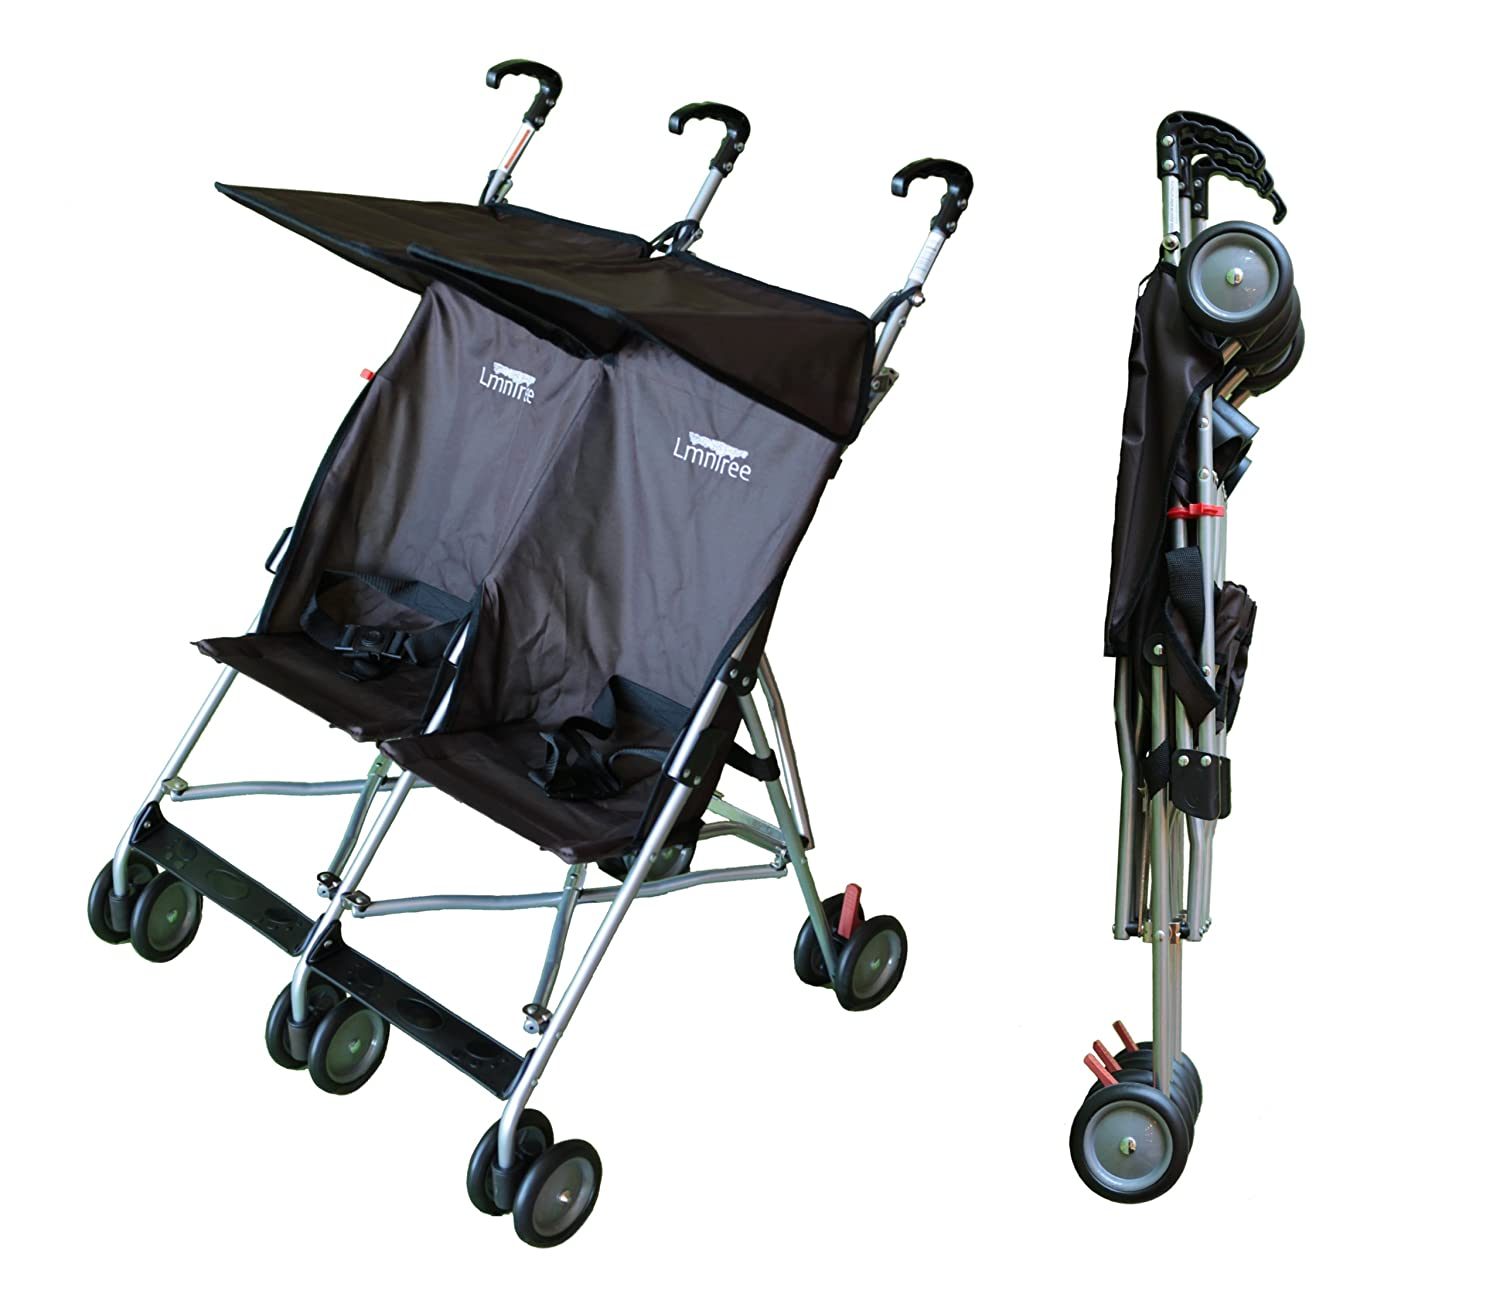 Amazon Lightweight Double Umbrella Stroller By Lmntree Grey Brown Tandem Strollers Baby